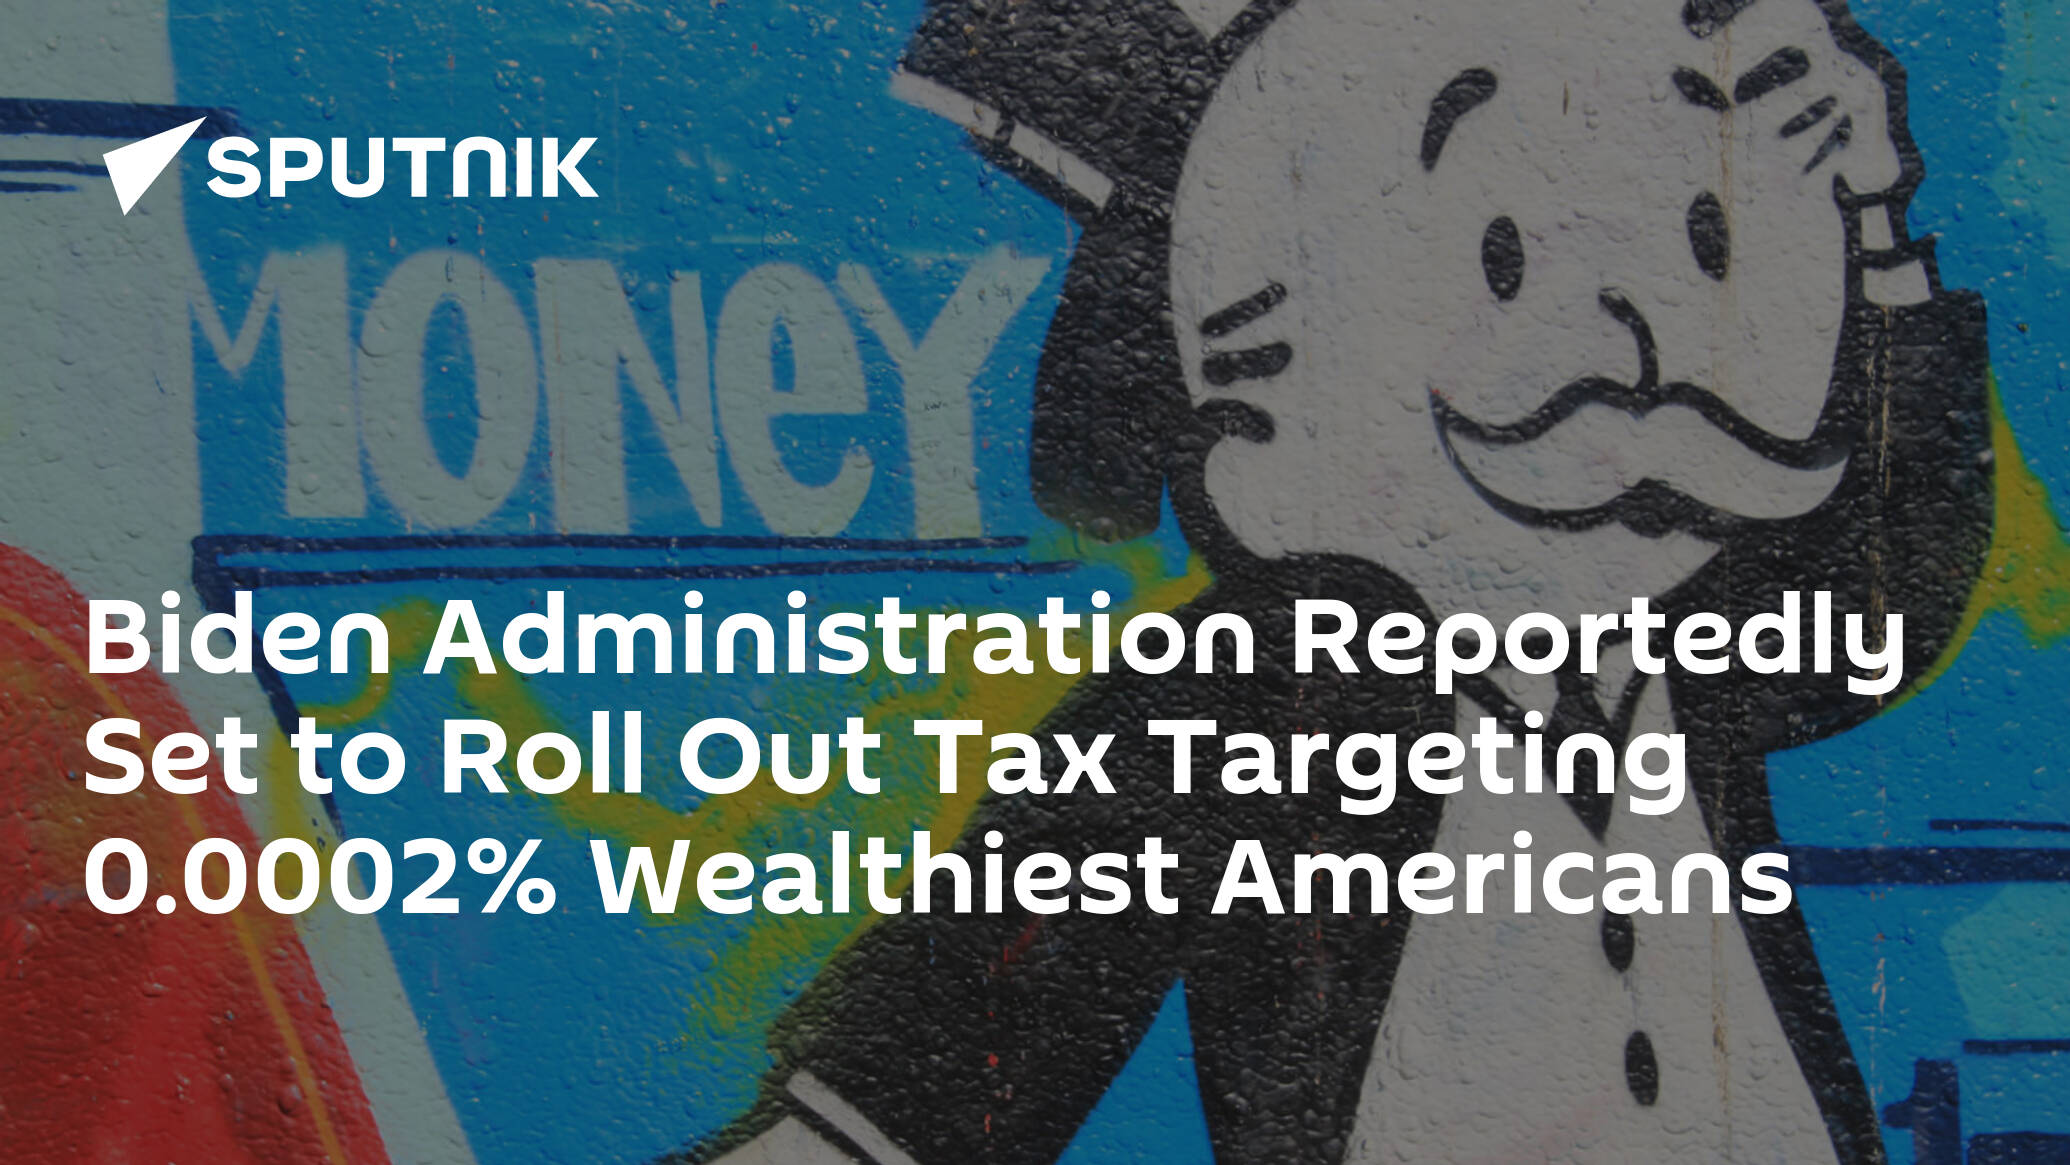 Biden Administration Reportedly Set to Roll Out Tax Targeting 0.0002% Wealthiest Americans